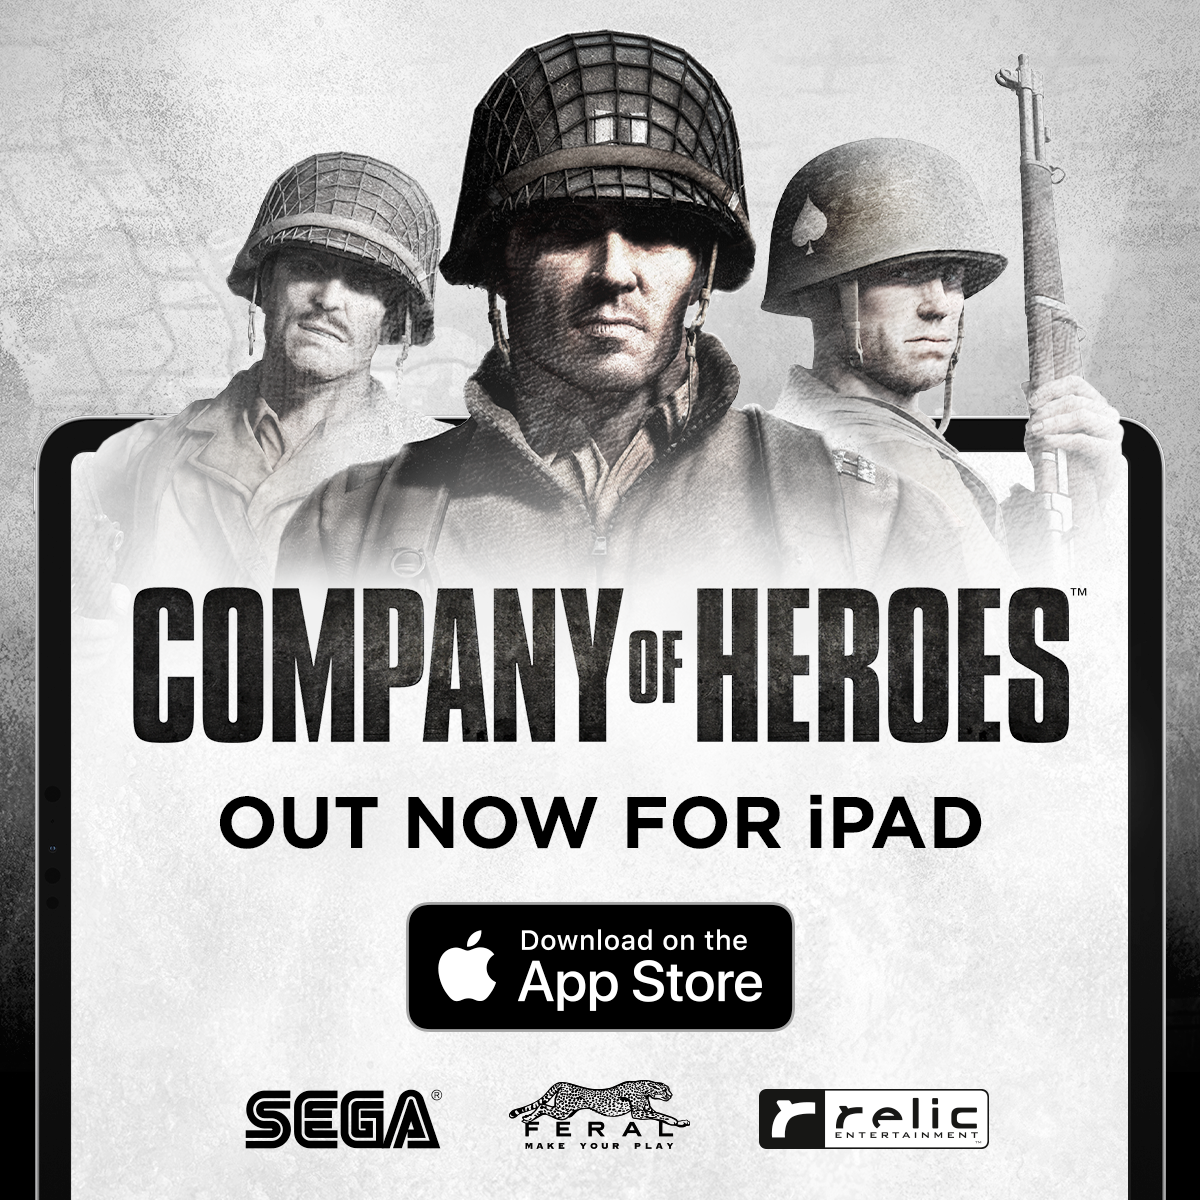 Company of Heroes - Out now for iPad